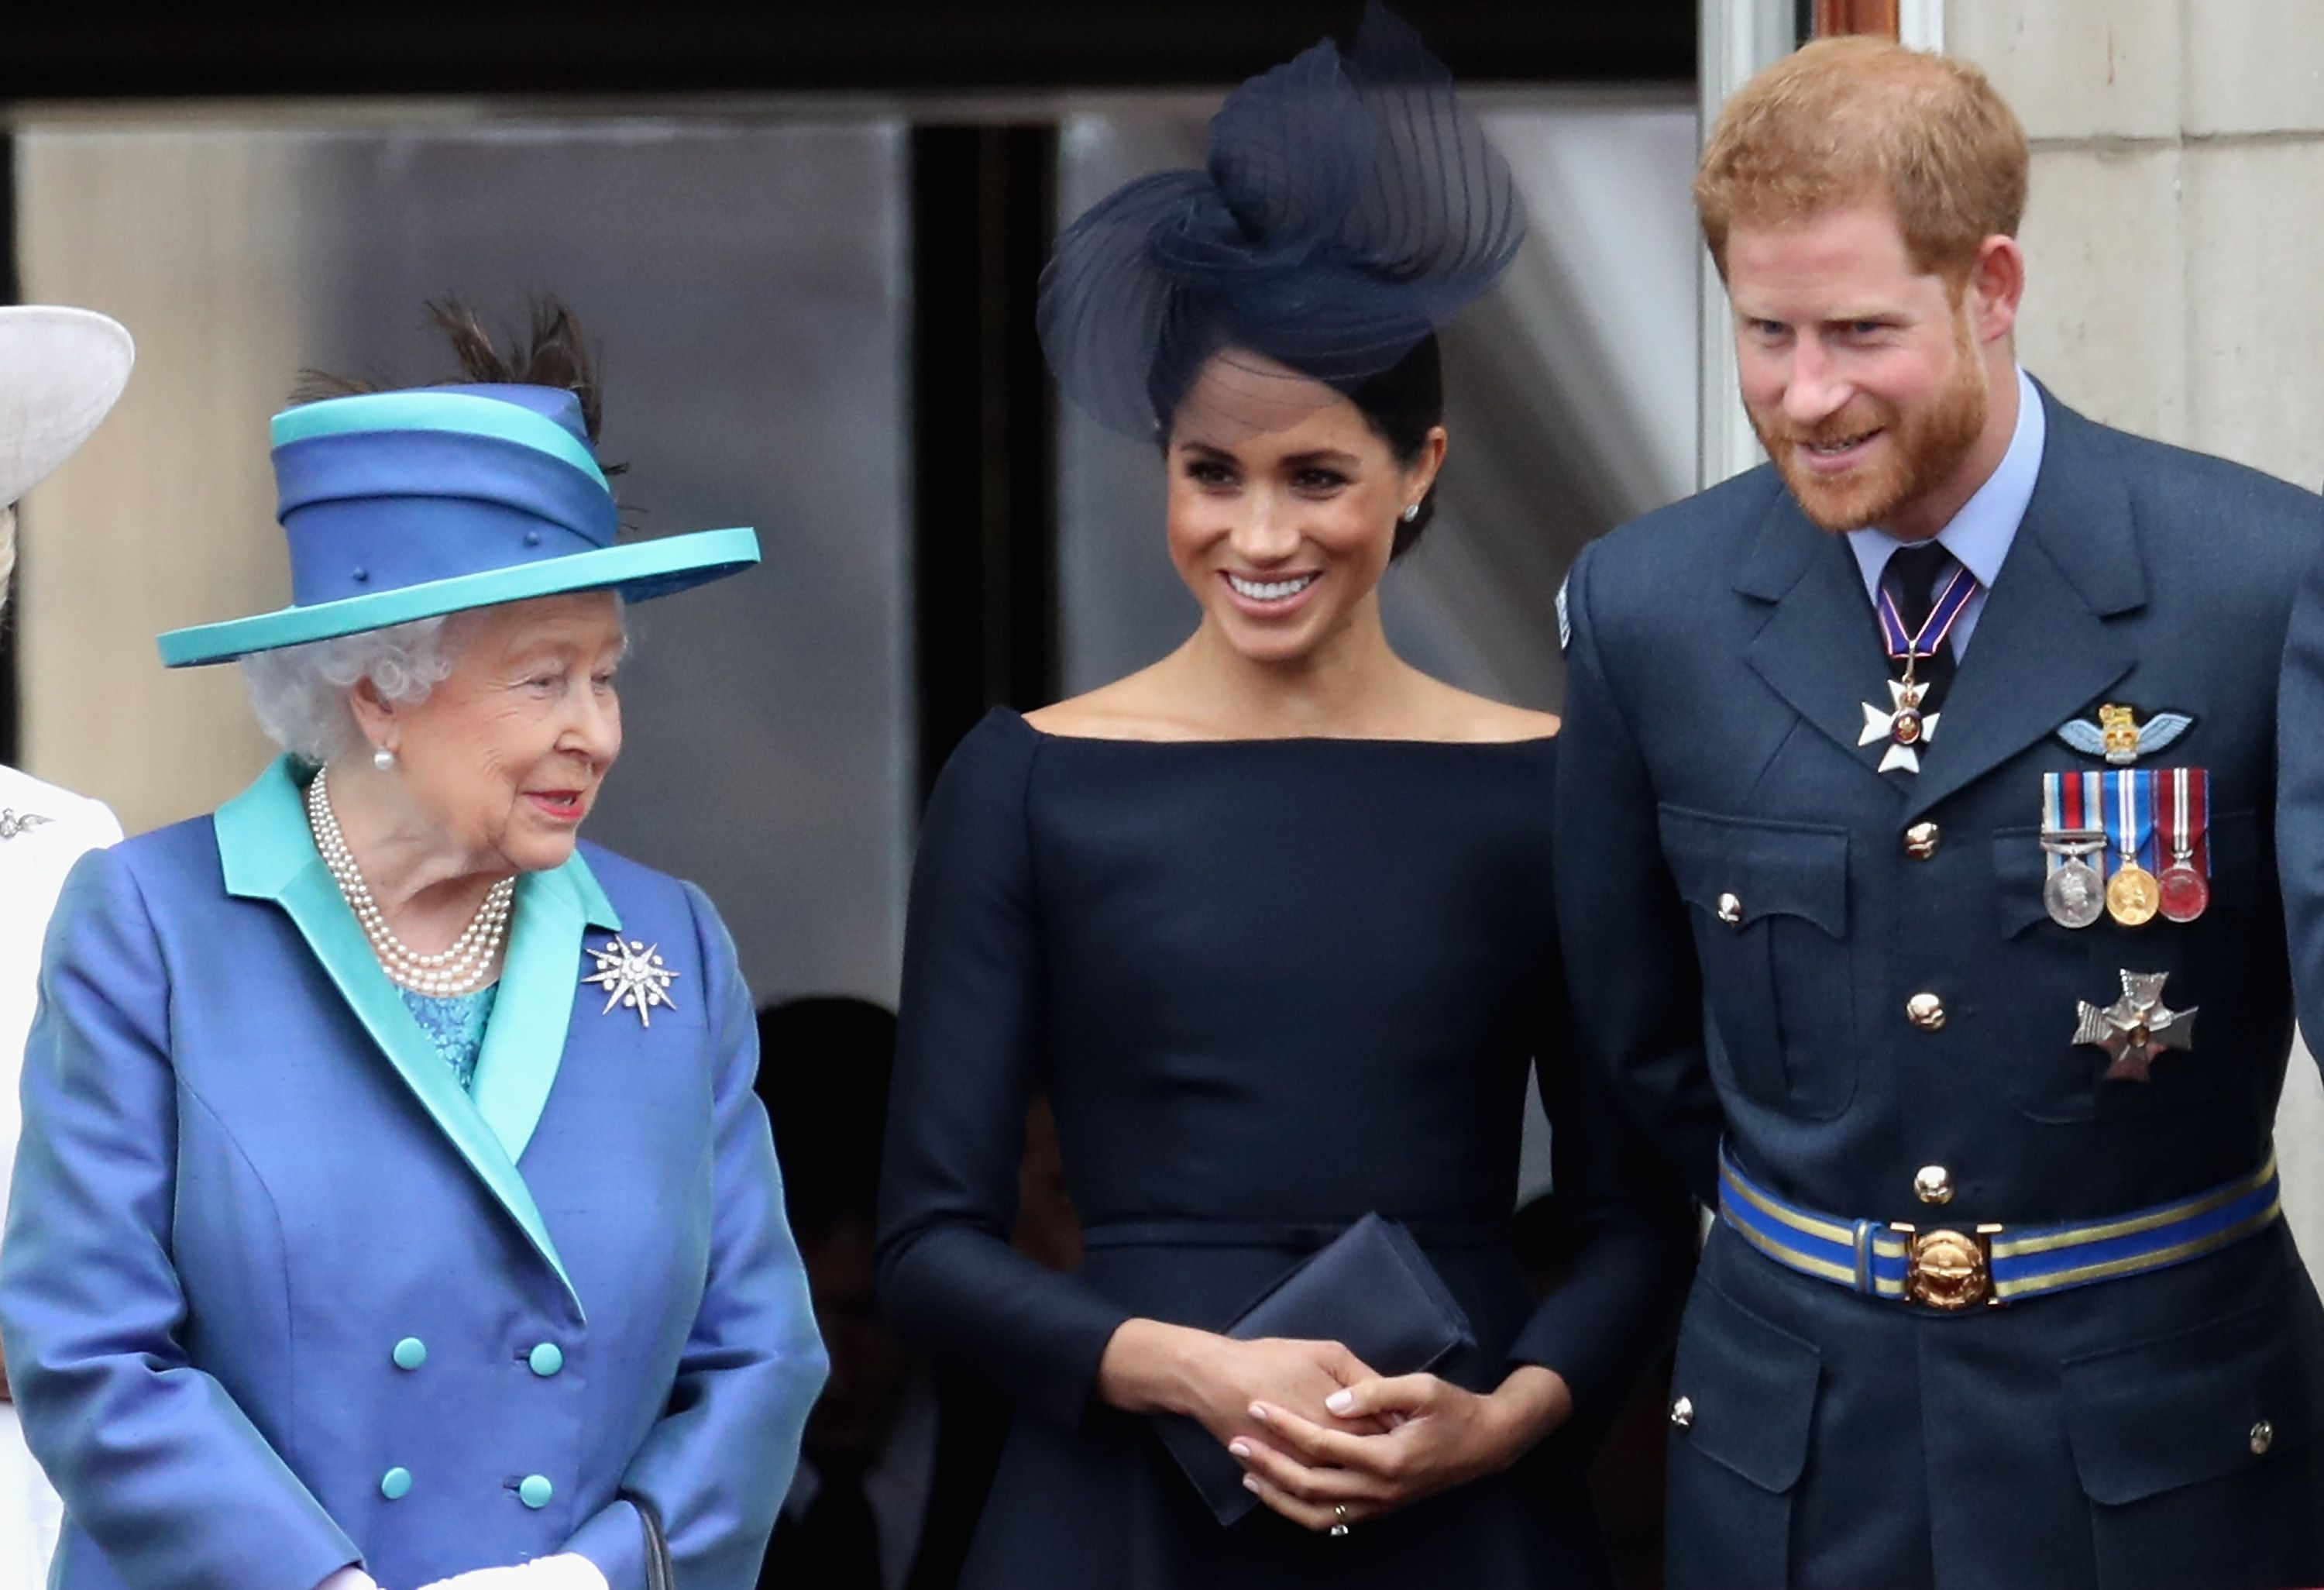 Meghan Markle and Prince Harry 'Were Moved' by the Queen's Coronavirus Address